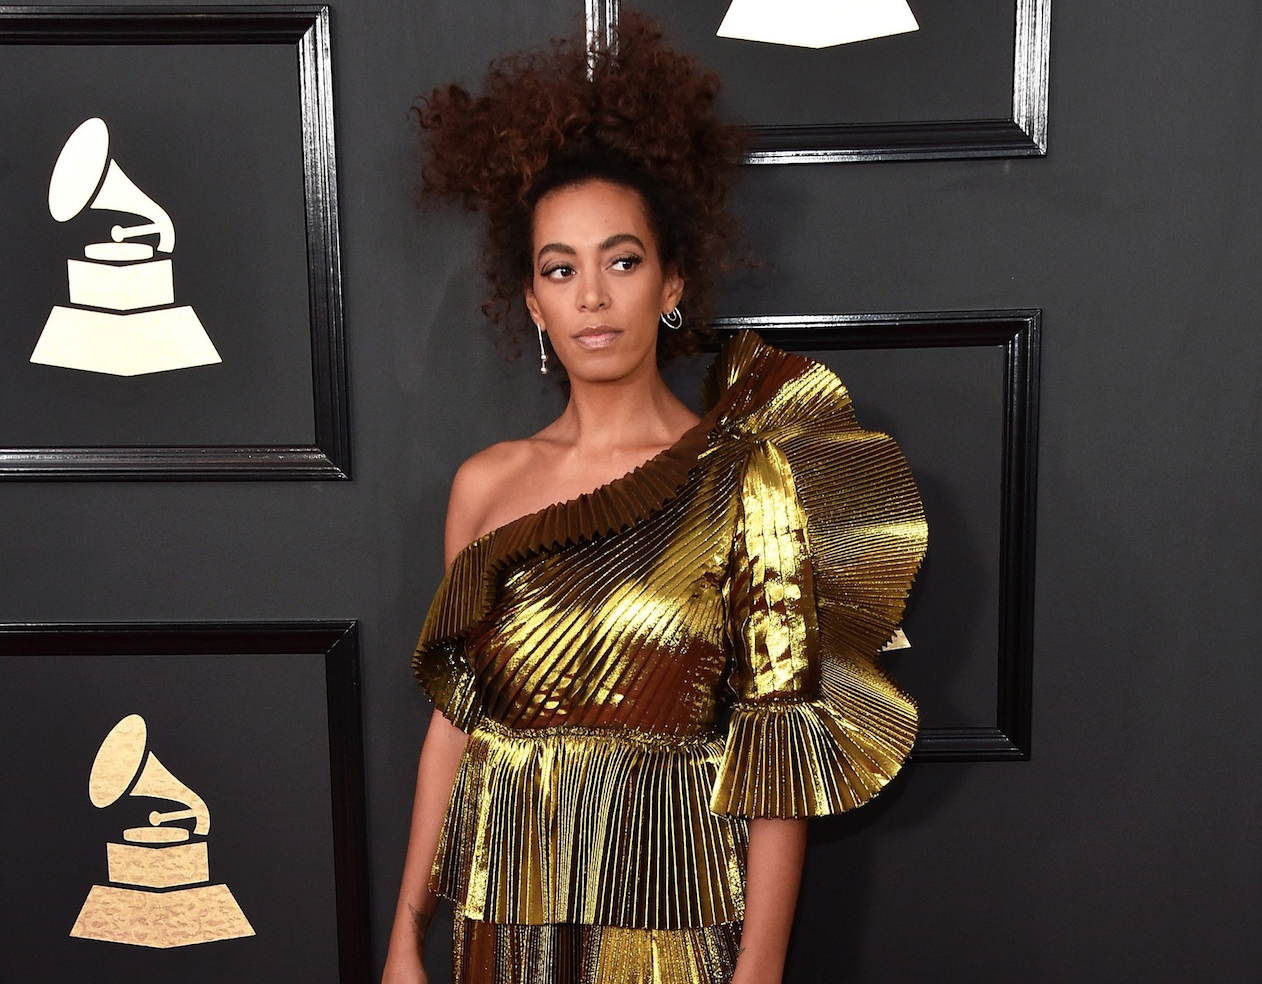 Grammys: Best and Worst Dressed